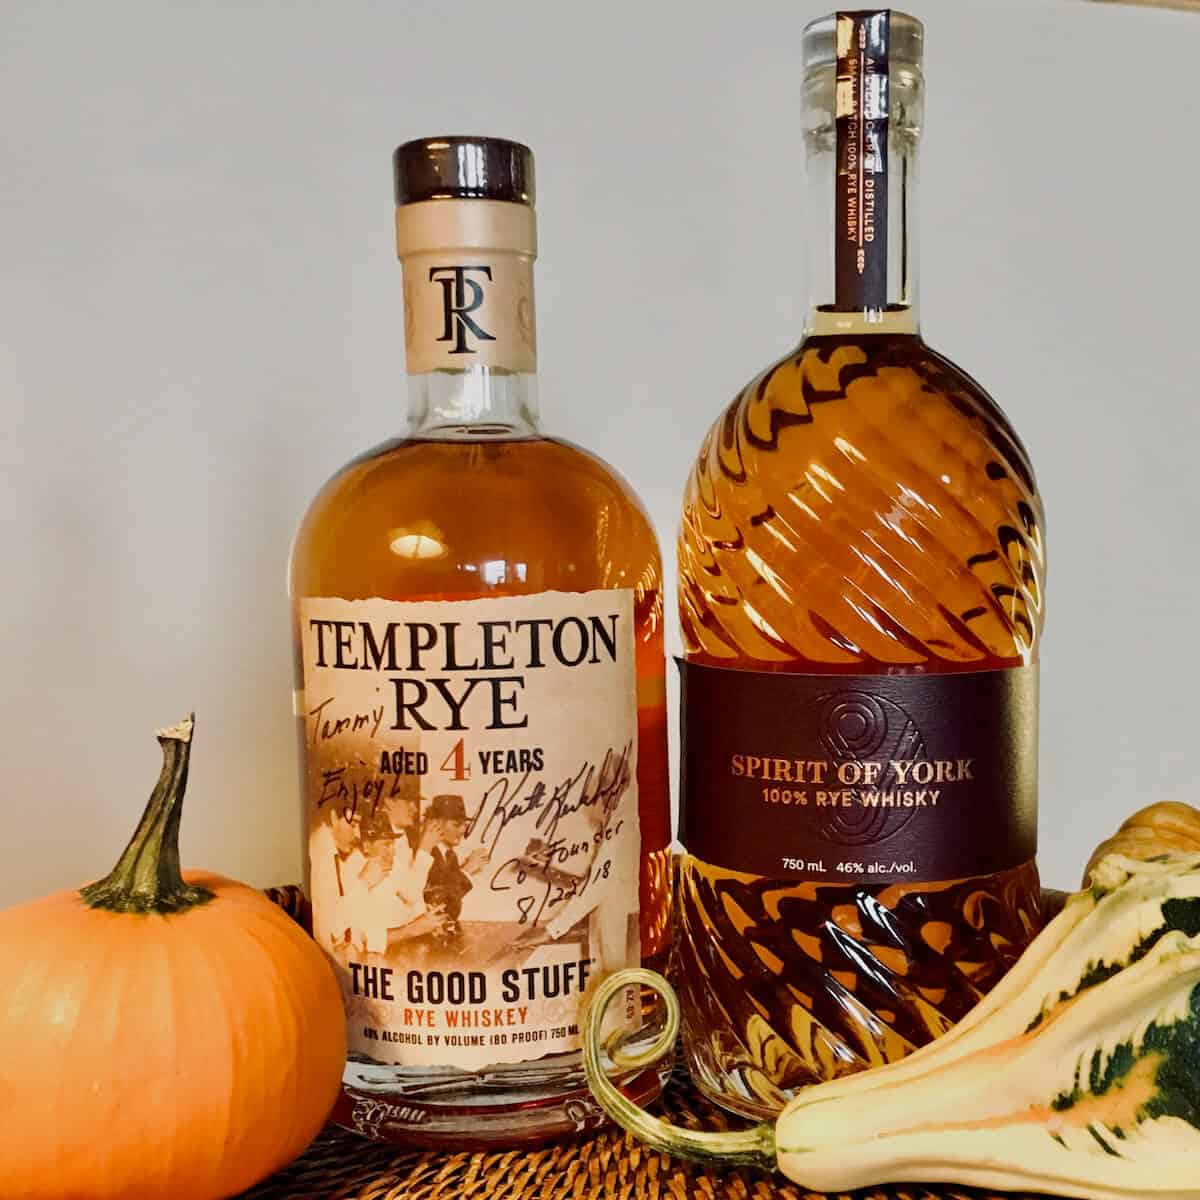 Templeton Rye whiskey and Spirit of York rye bottles surrounded by gourds on a wood tray.